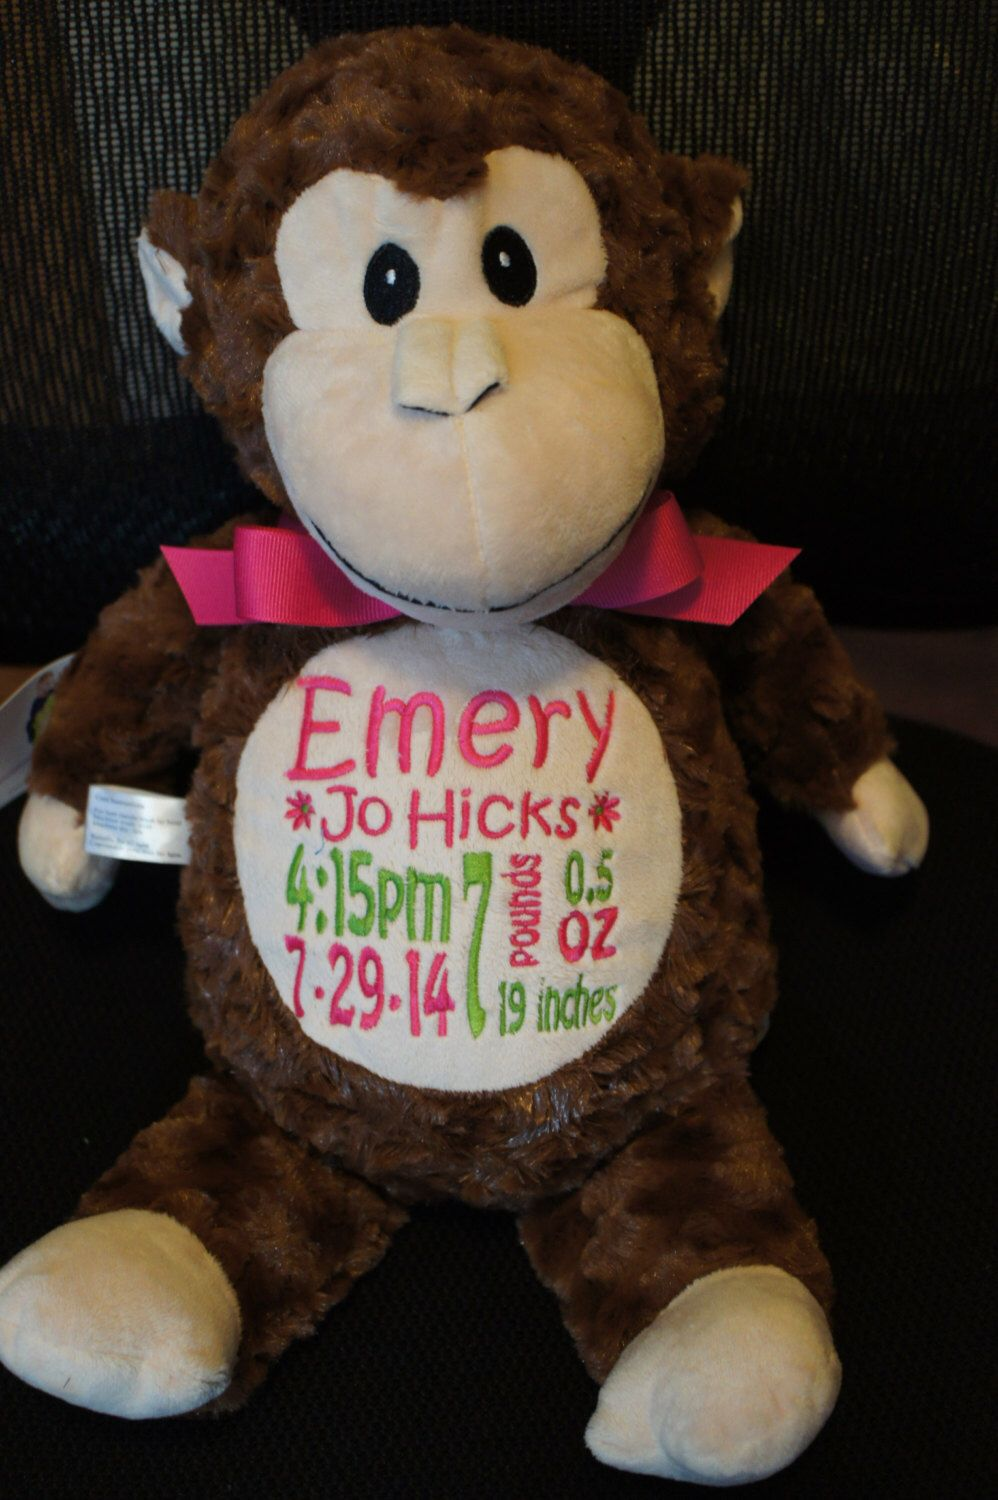 Personalized baby gift baby cubby huggles the monkey a plush personalized baby gift baby cubbies huggles the monkey birth announcement stuffed animal keepsake with machine embroidery negle Choice Image